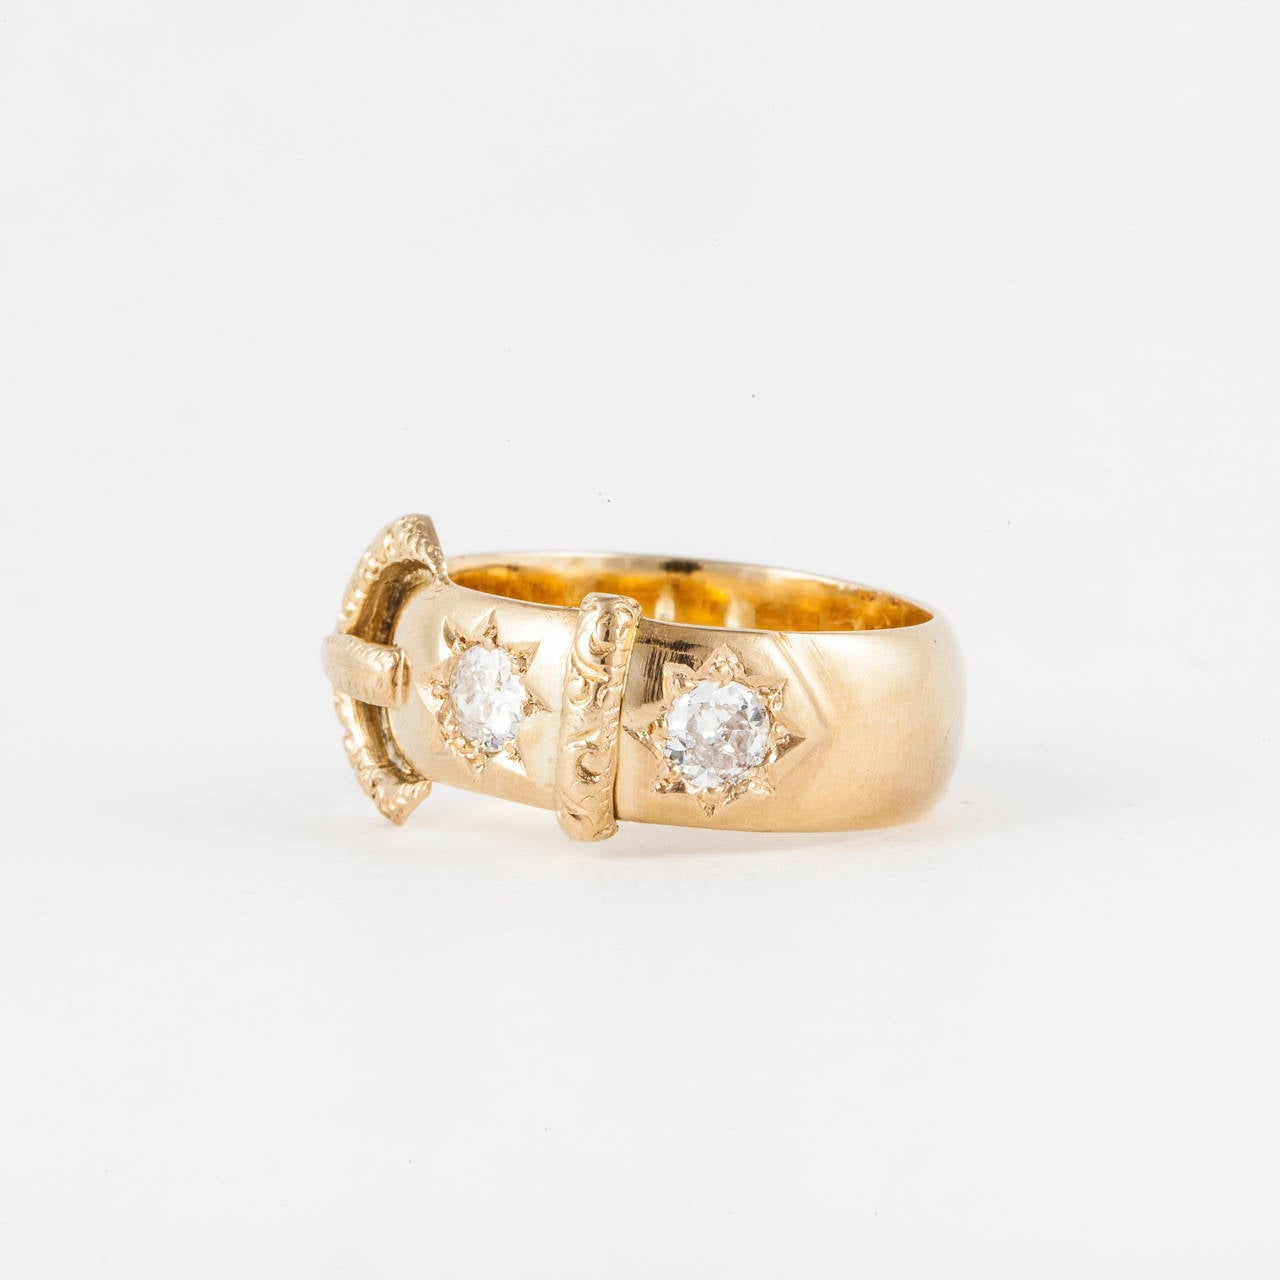 18K yellow gold buckle ring with hallmarks indicating ring was made in London in 1917.  Features two (2) Old Mine cut diamonds with a total weight of 0.75 carats. Beautiful engraving with diamonds set inside a star pattern.  Measures 3/8 of an inch